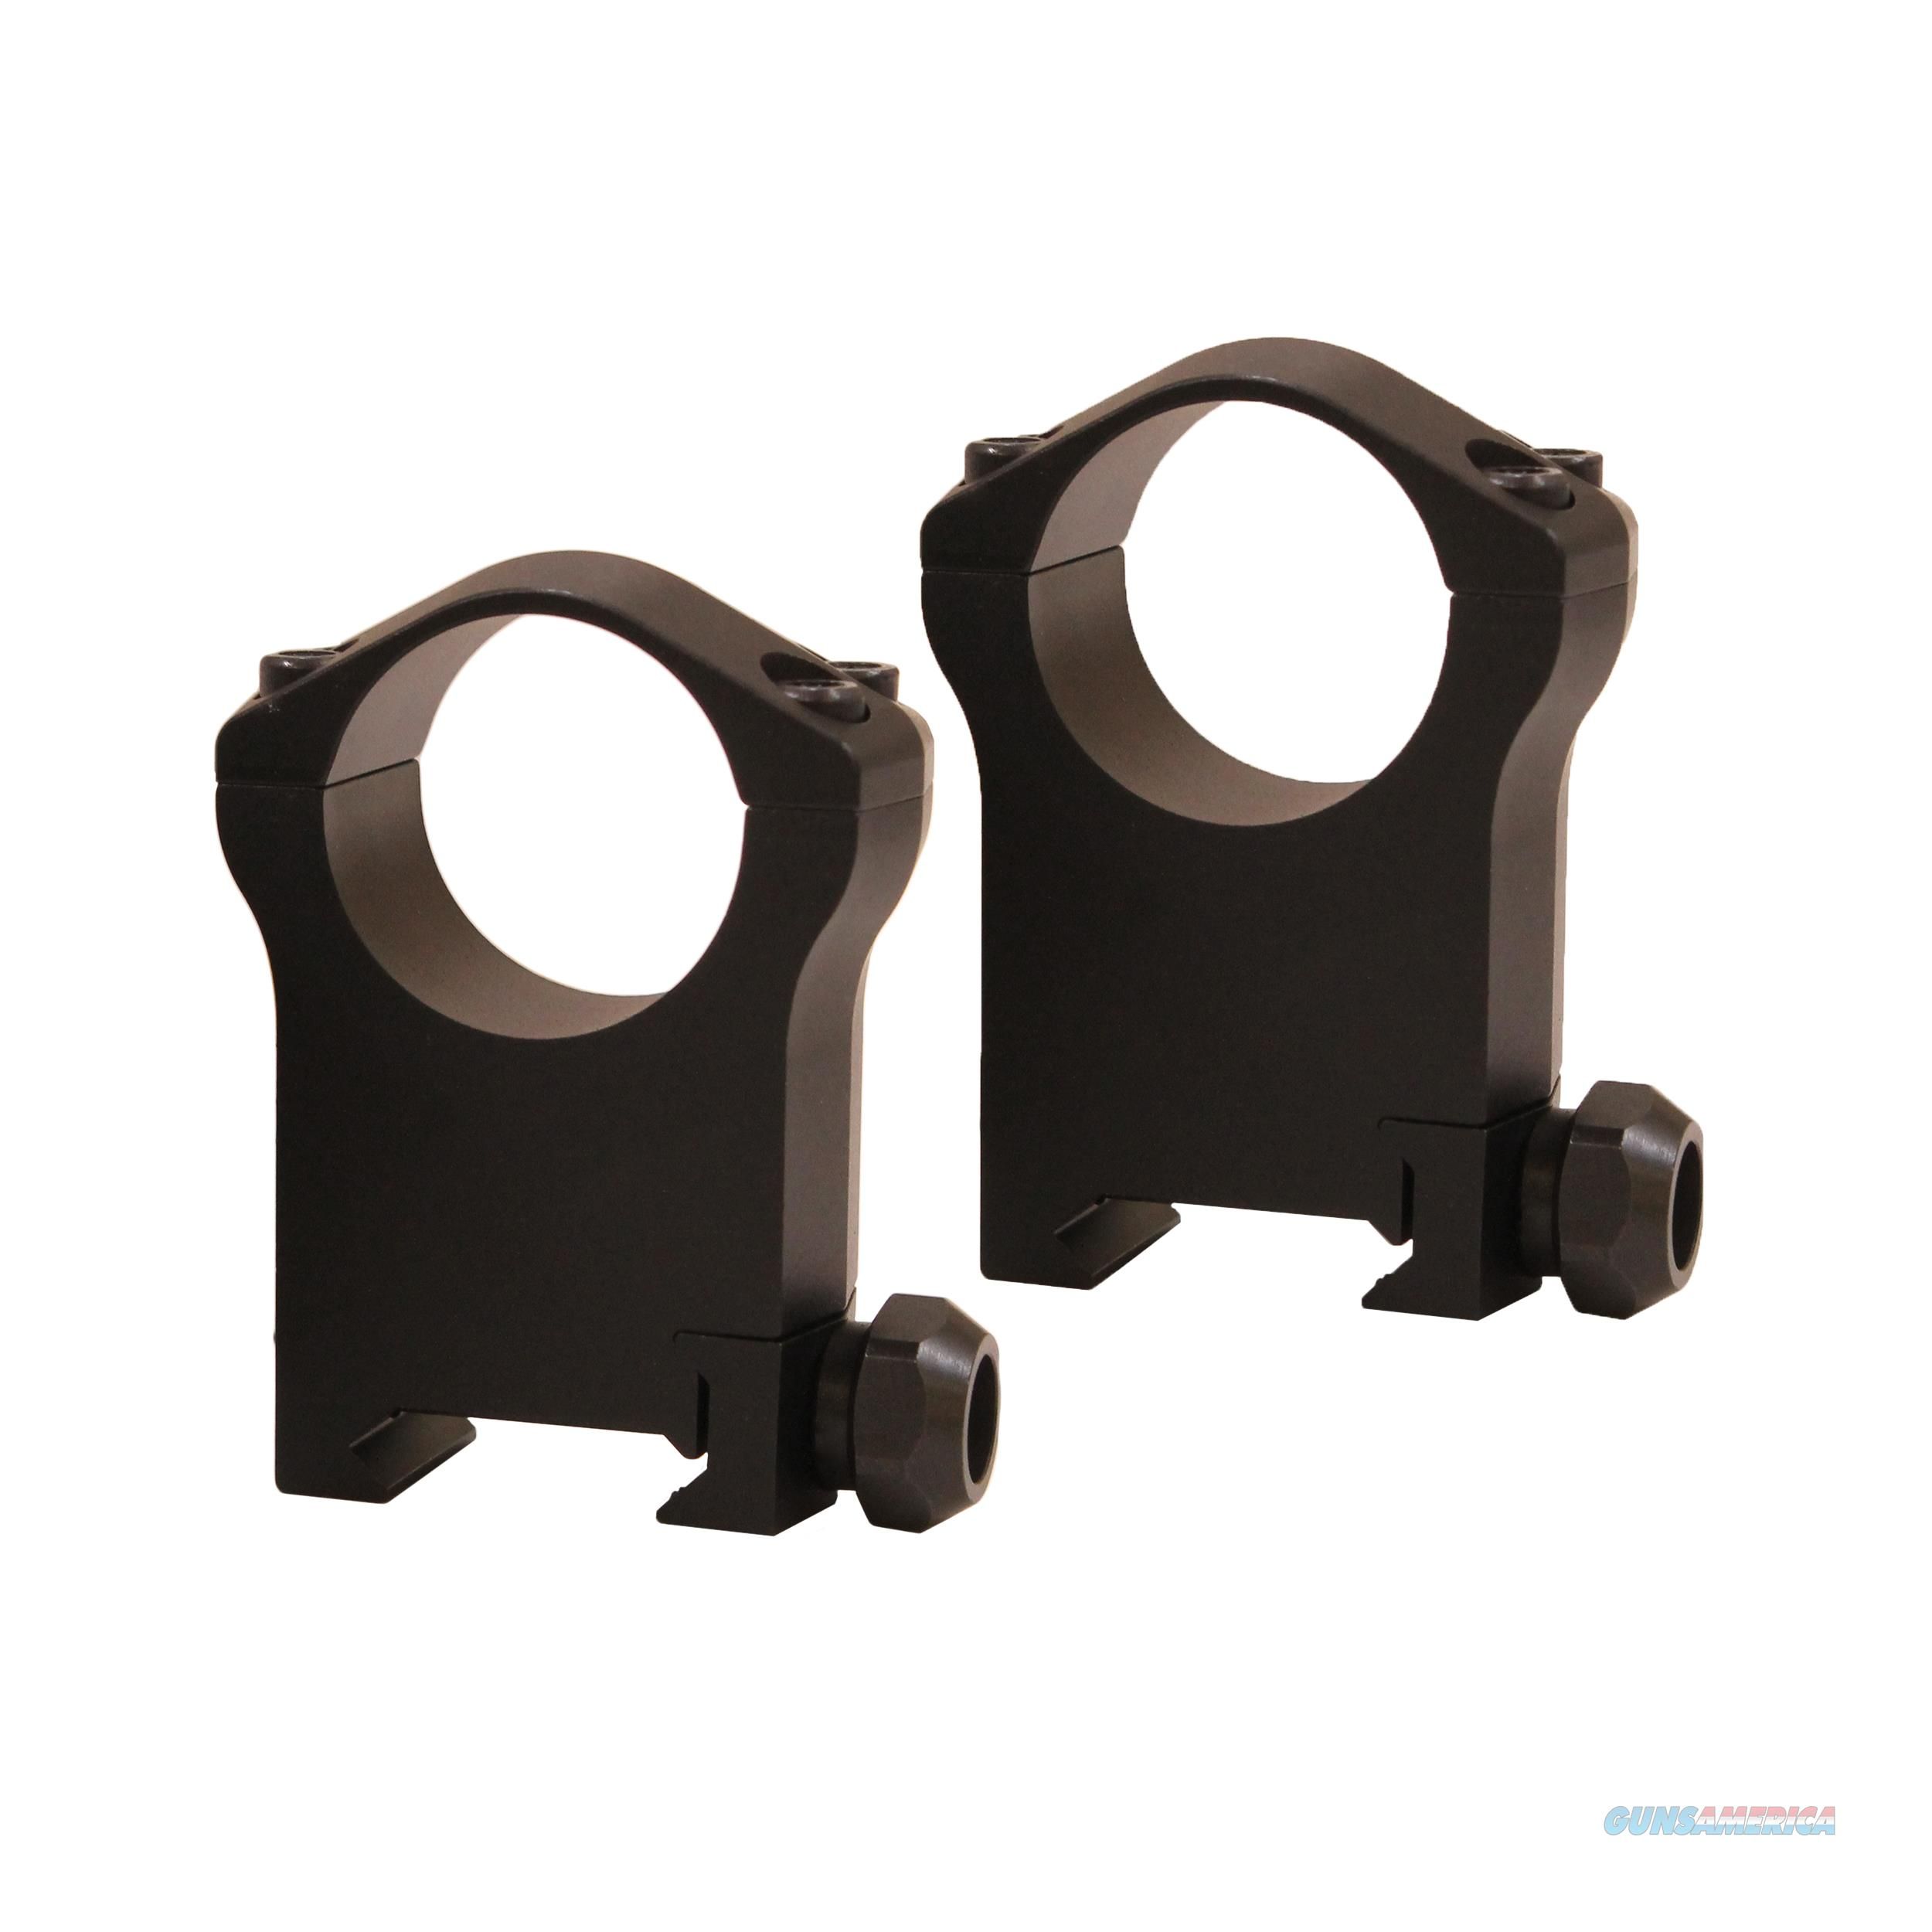 Warne Mfg Co Mountain Tech Picatinny Style Rings 7204M  Non-Guns > Scopes/Mounts/Rings & Optics > Mounts > Other